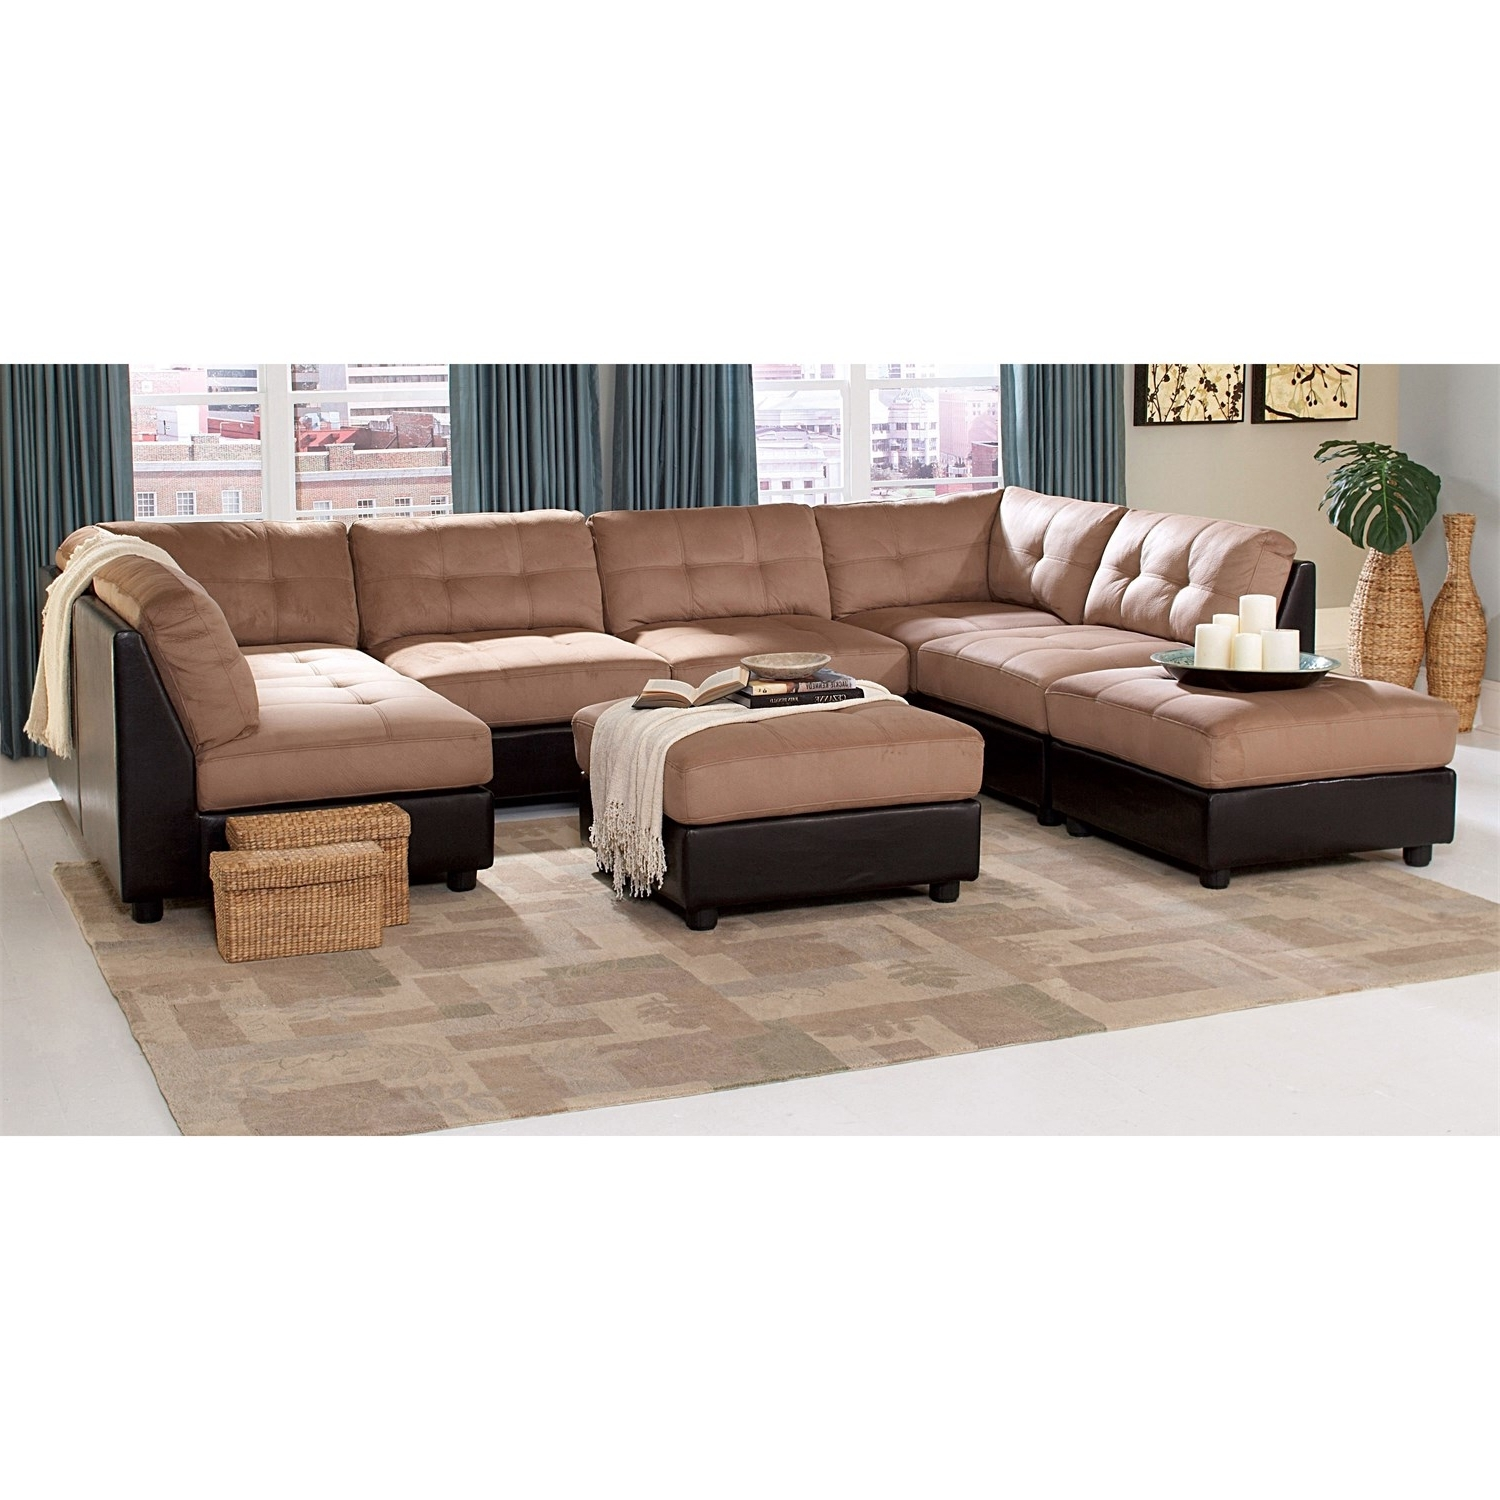 Coaster Furniture 551001/4 551002/2 Claude 6 Piece Brown Sectional Pertaining To Recent Macon Ga Sectional Sofas (View 2 of 20)